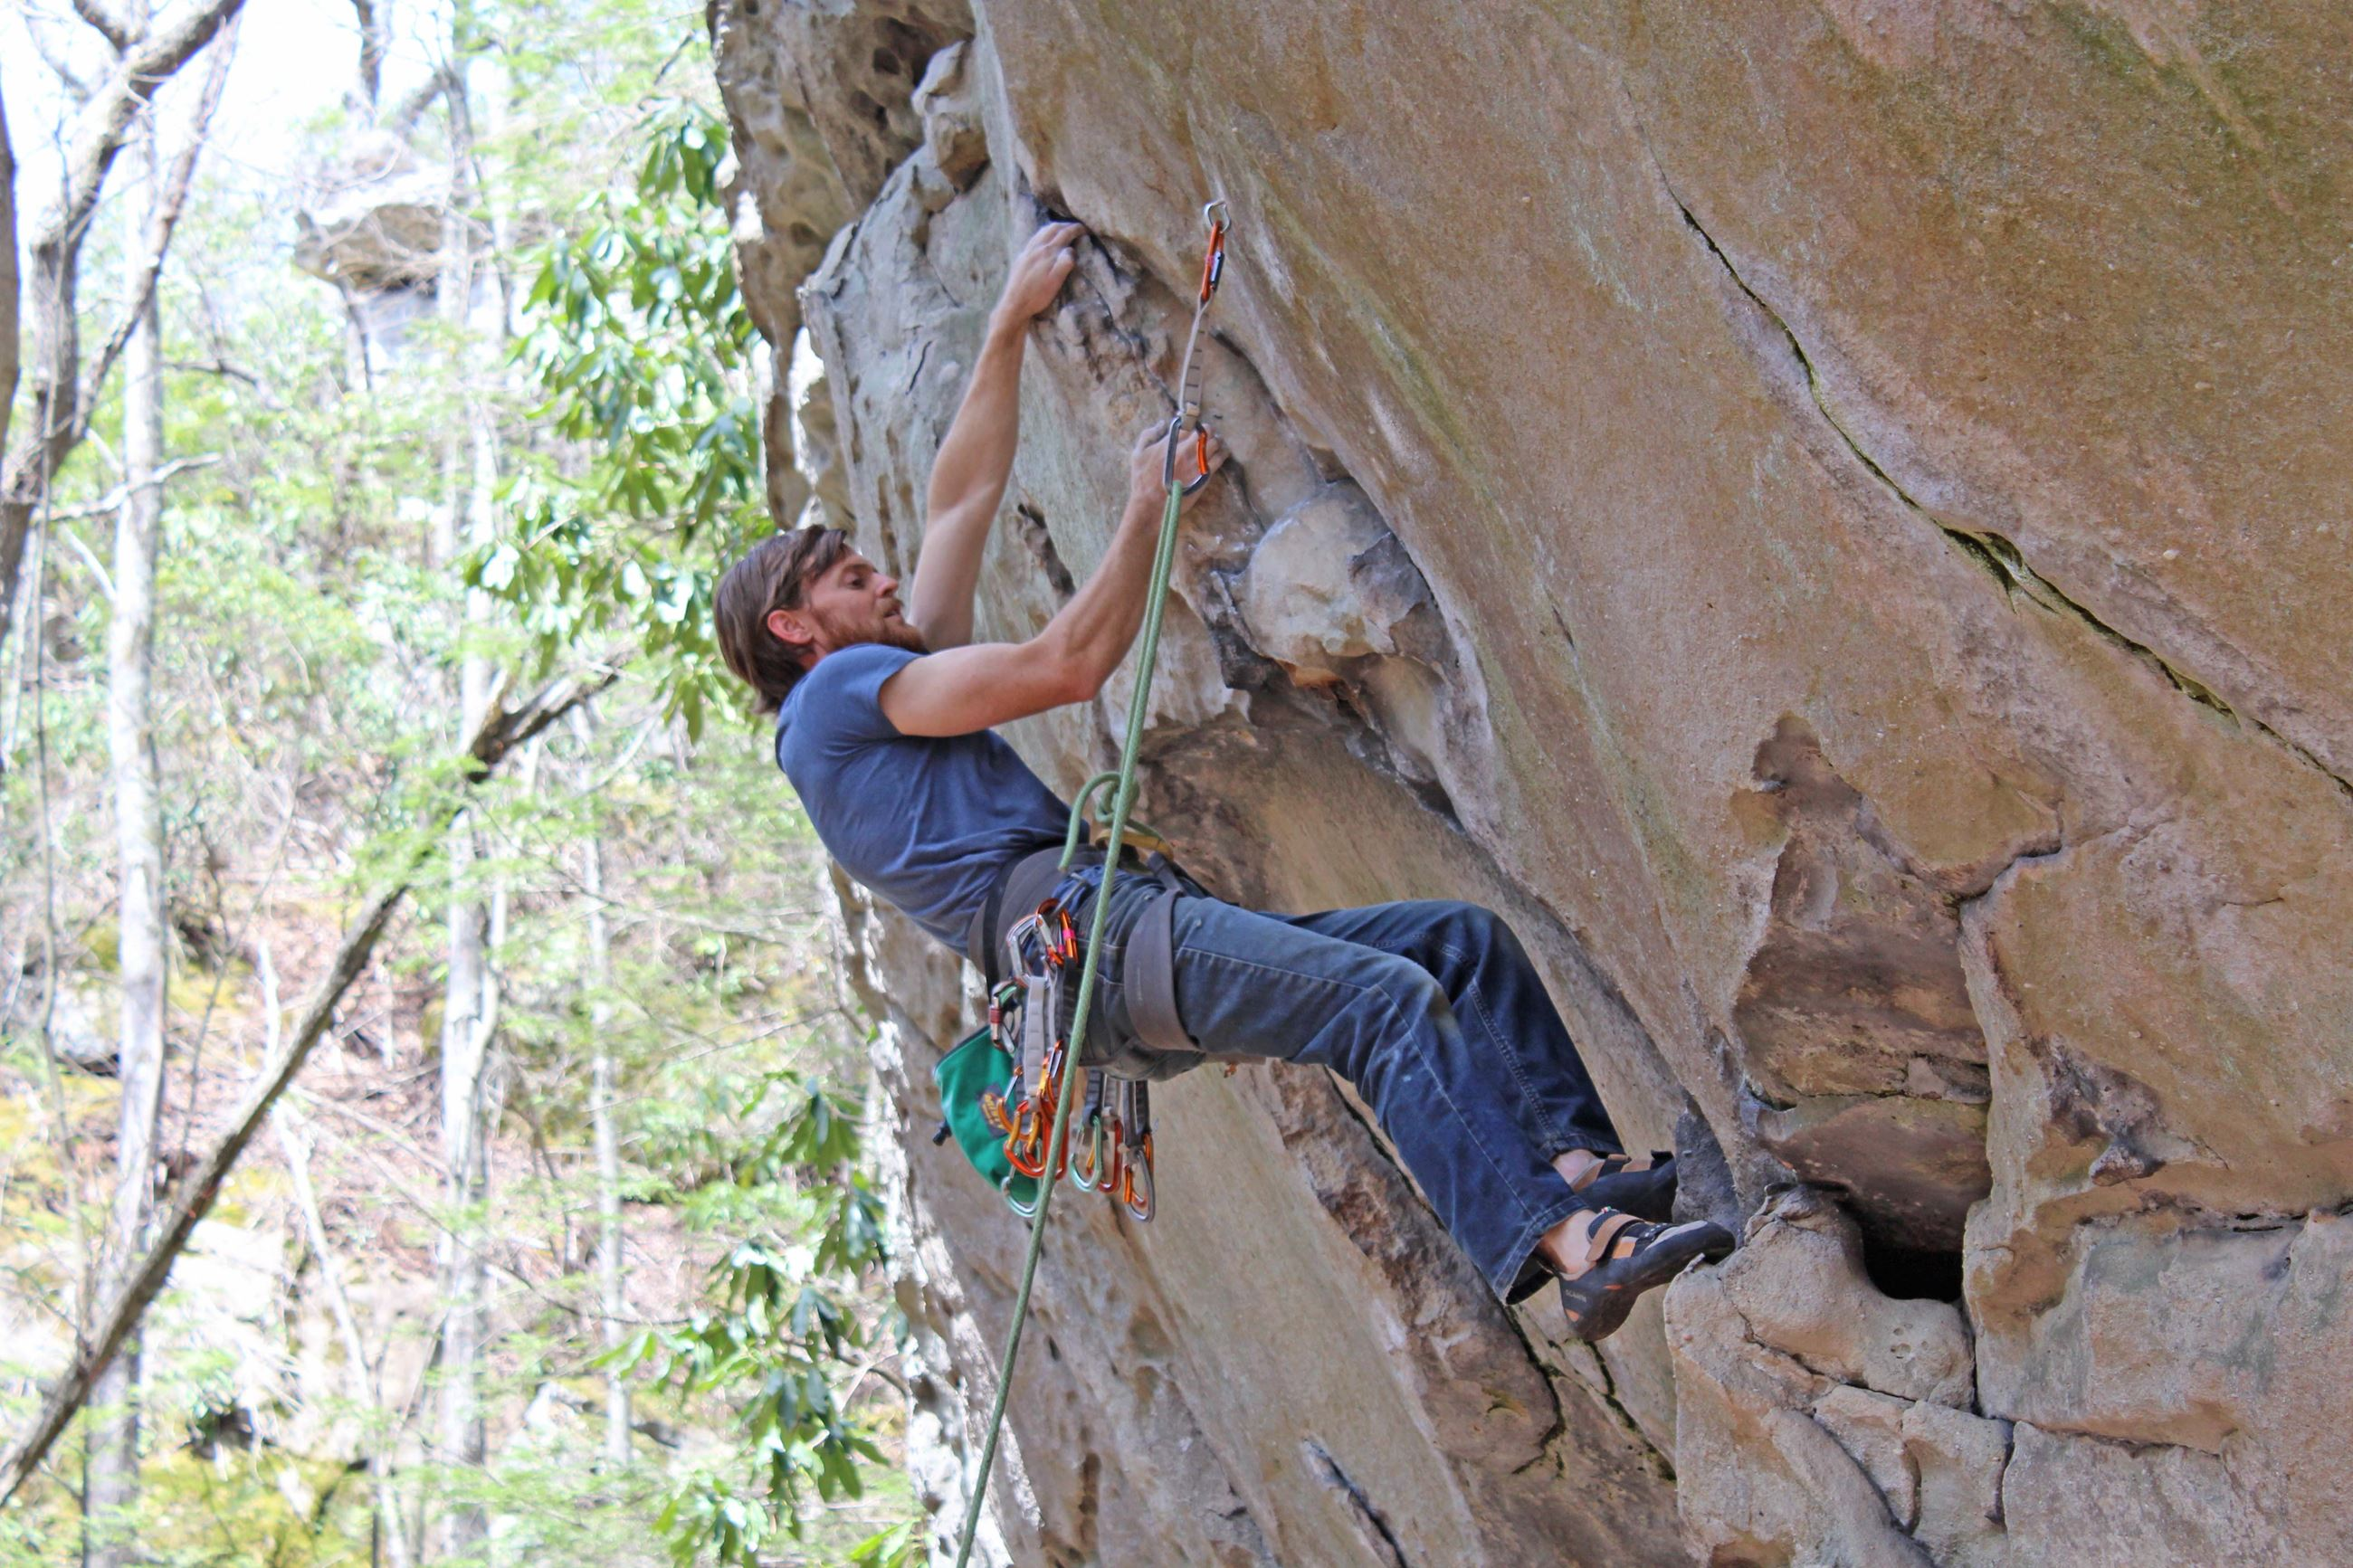 Rock climber at The Sanctuary in Flag Rock Recreation Area